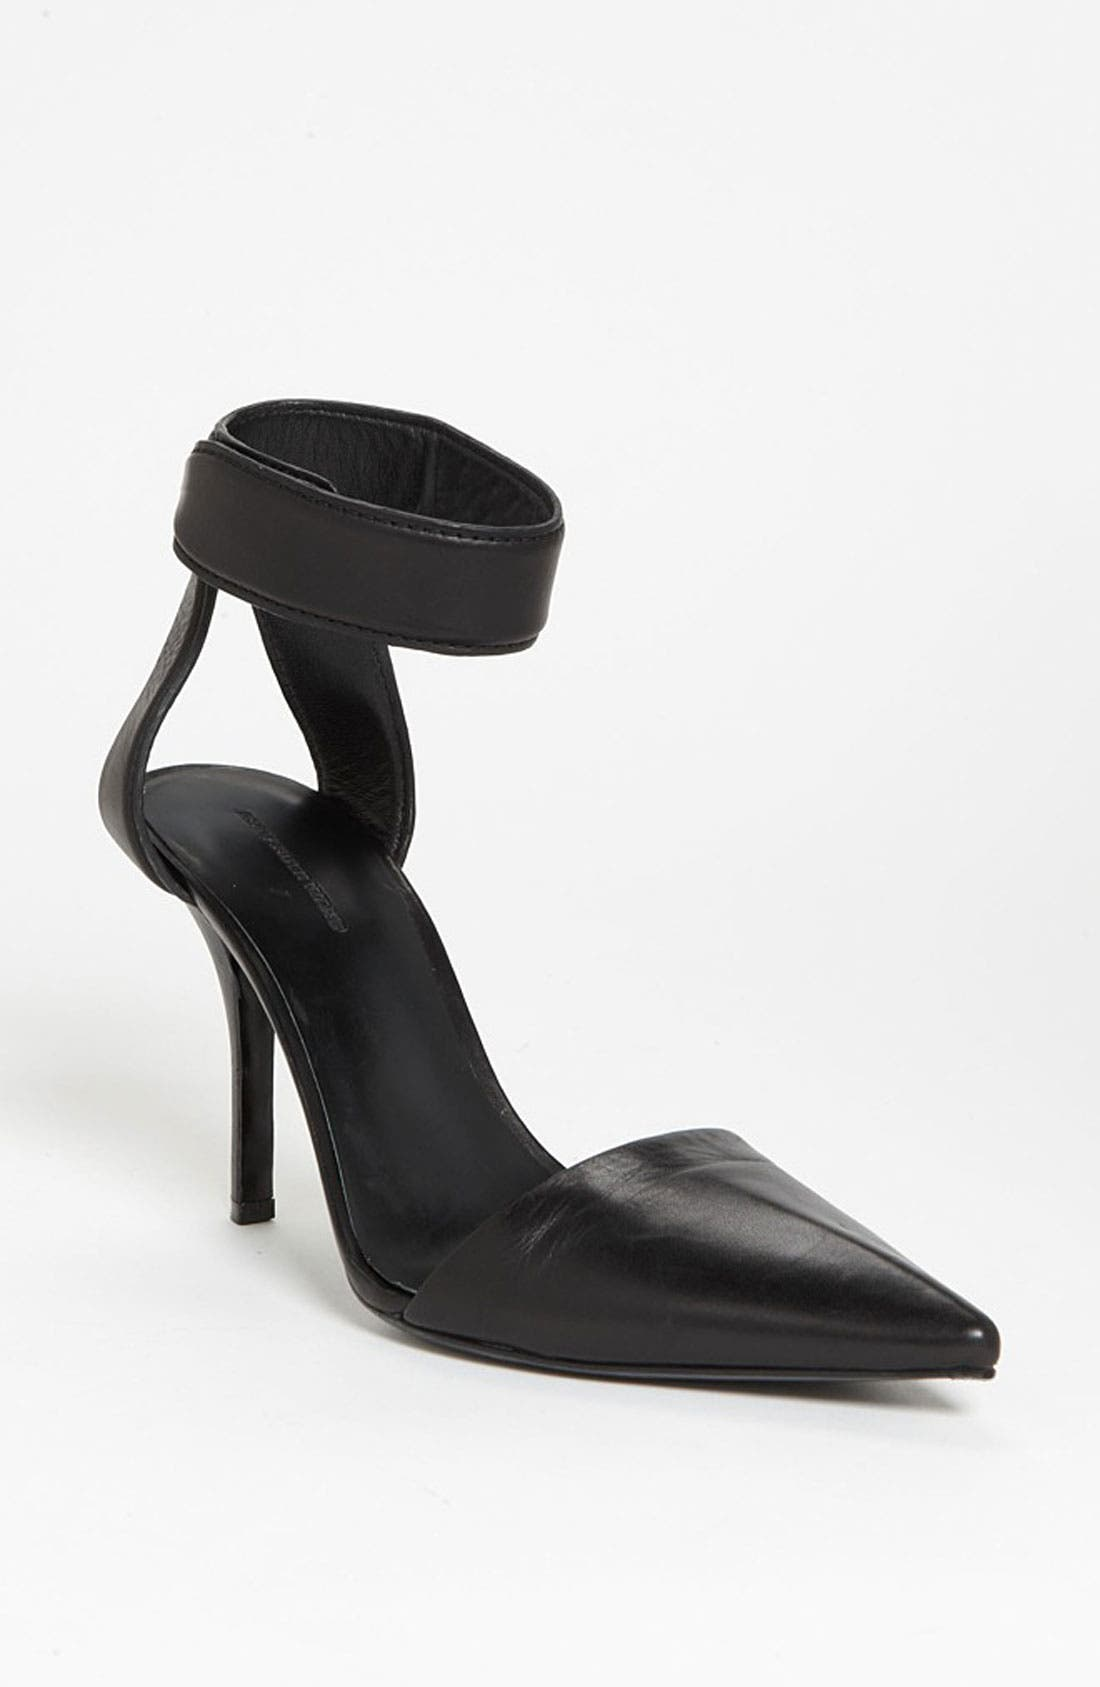 Alternate Image 1 Selected - Alexander Wang 'Liya' Pump